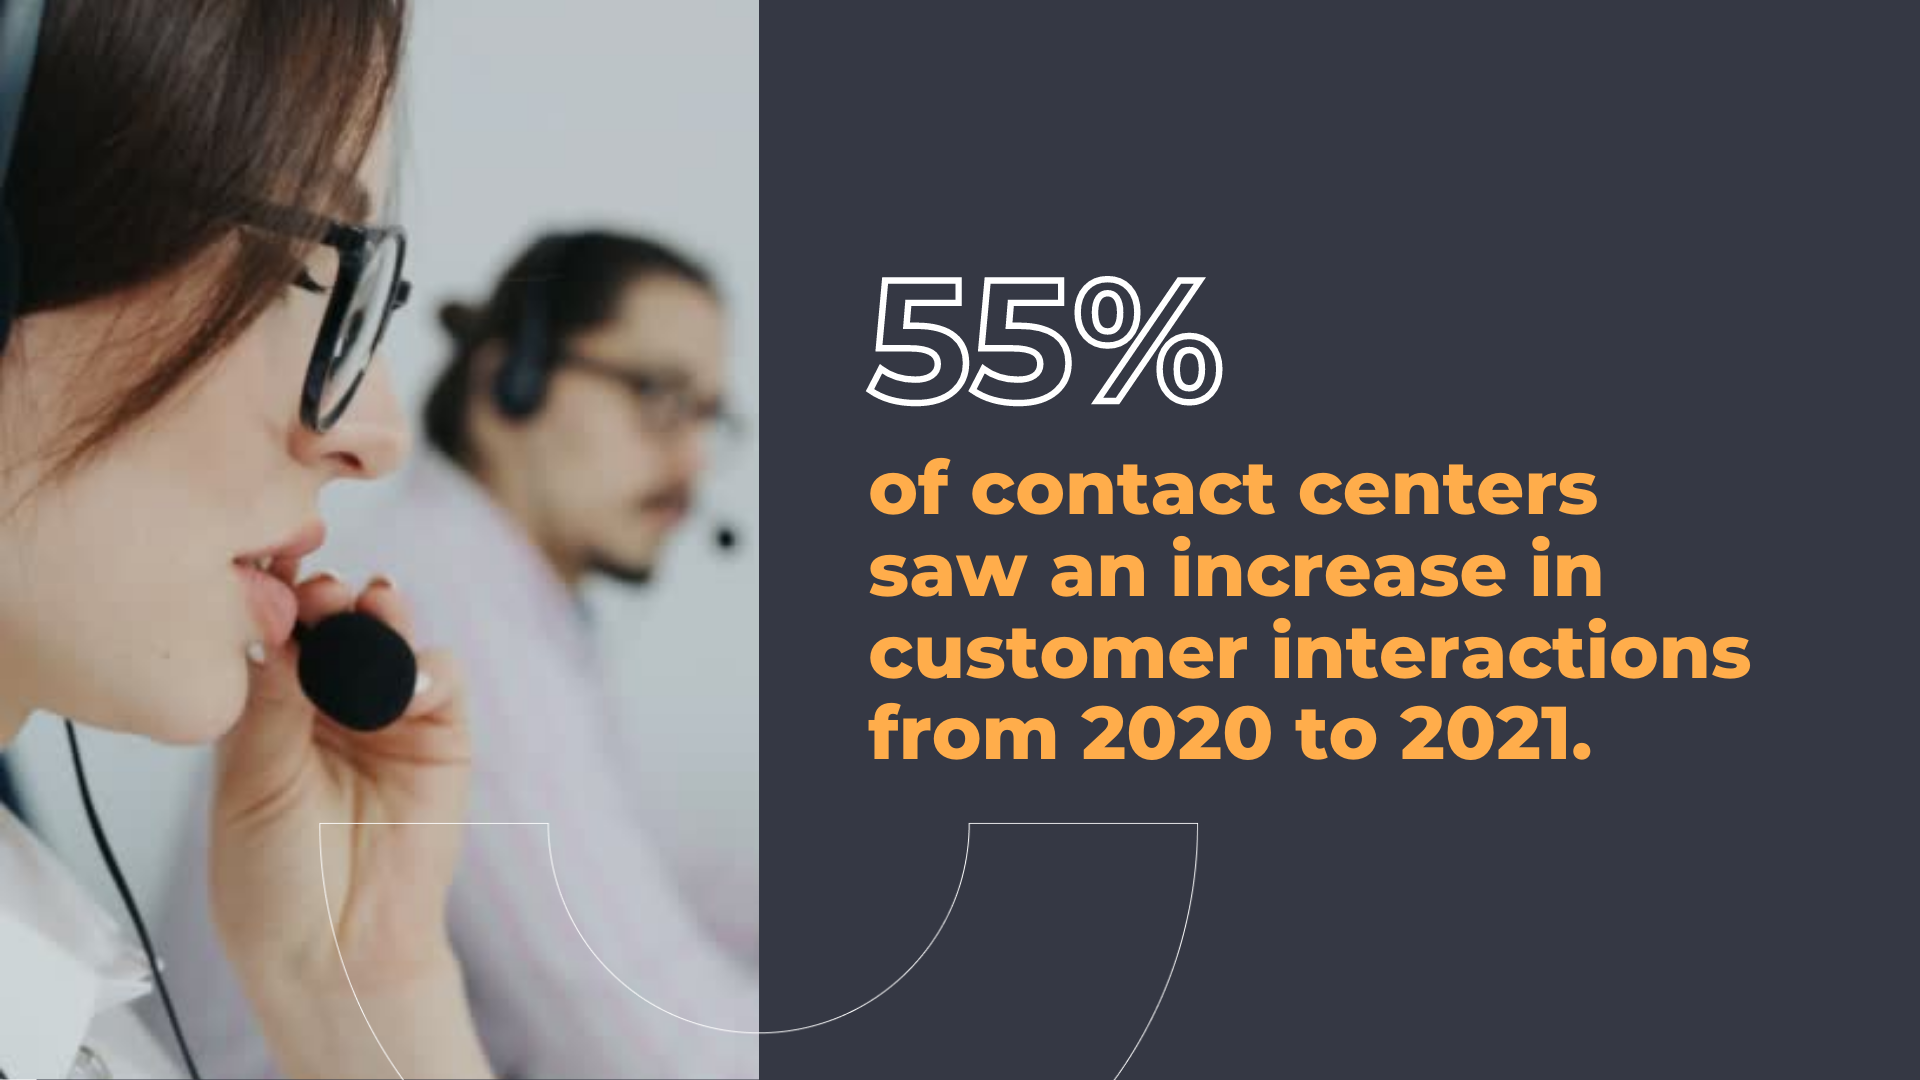 55% of contact centers saw an increase in customer interactions from 2020 to 2021.